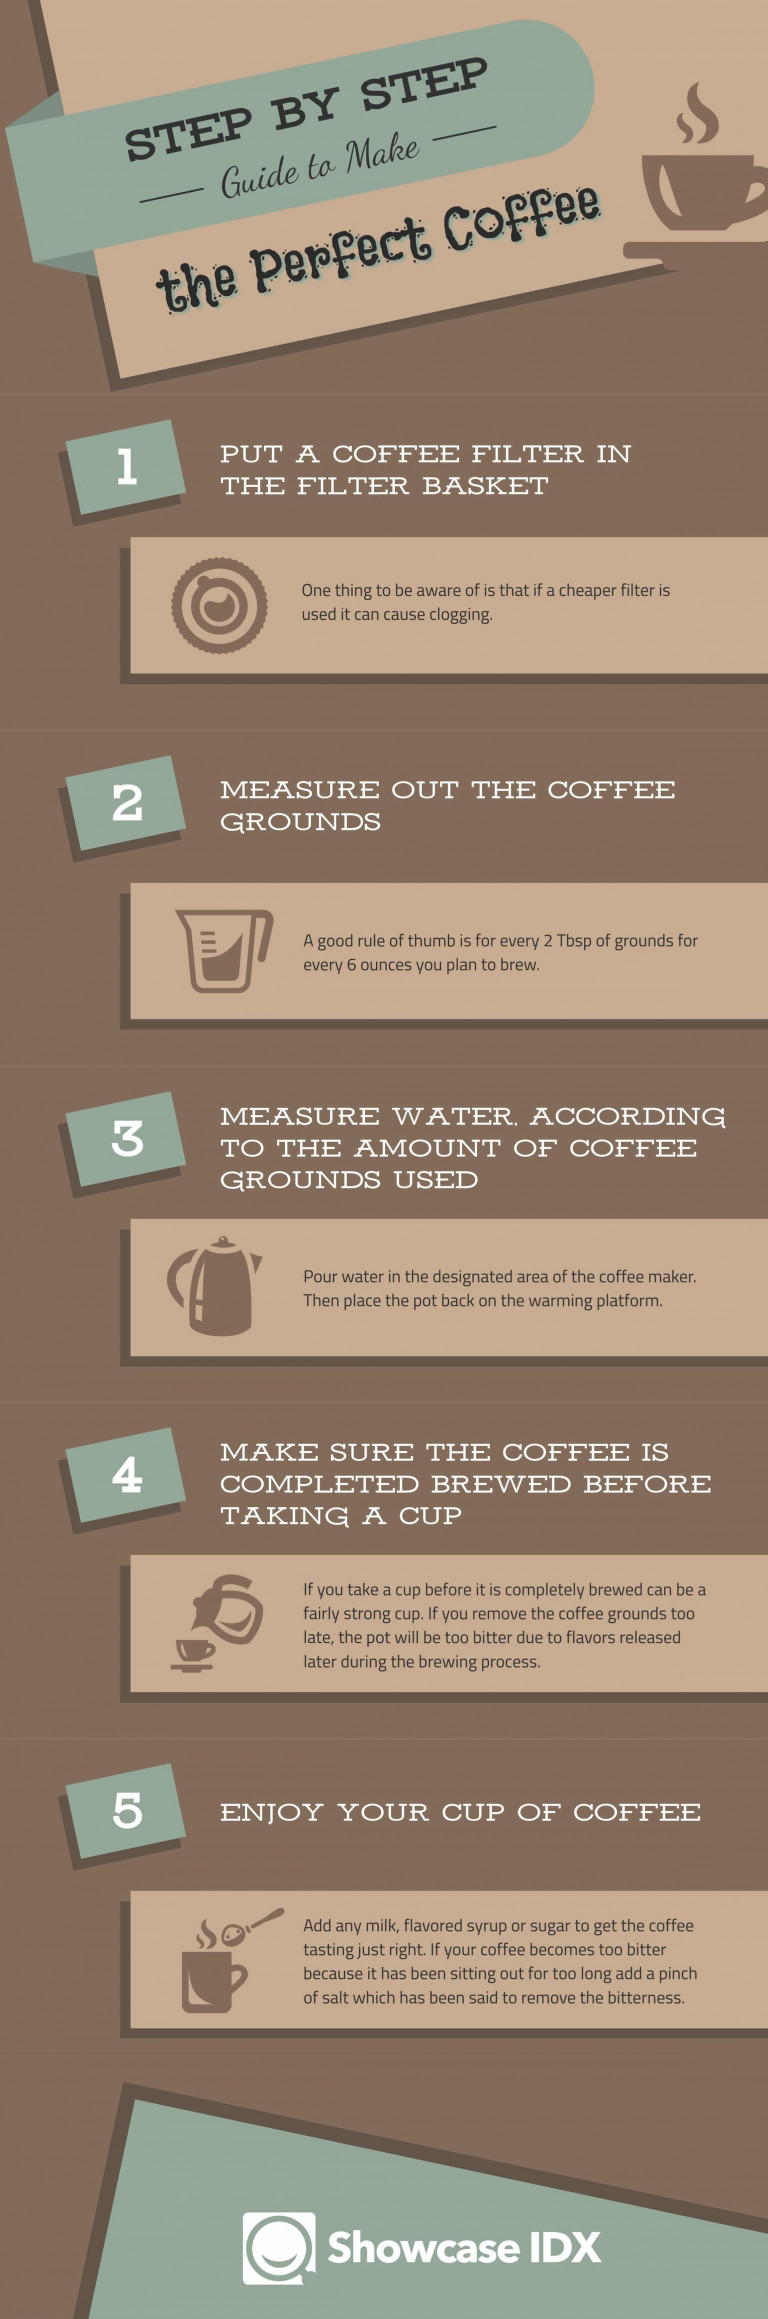 Infographic-step-by-step-guide-to-making-perect-coffee